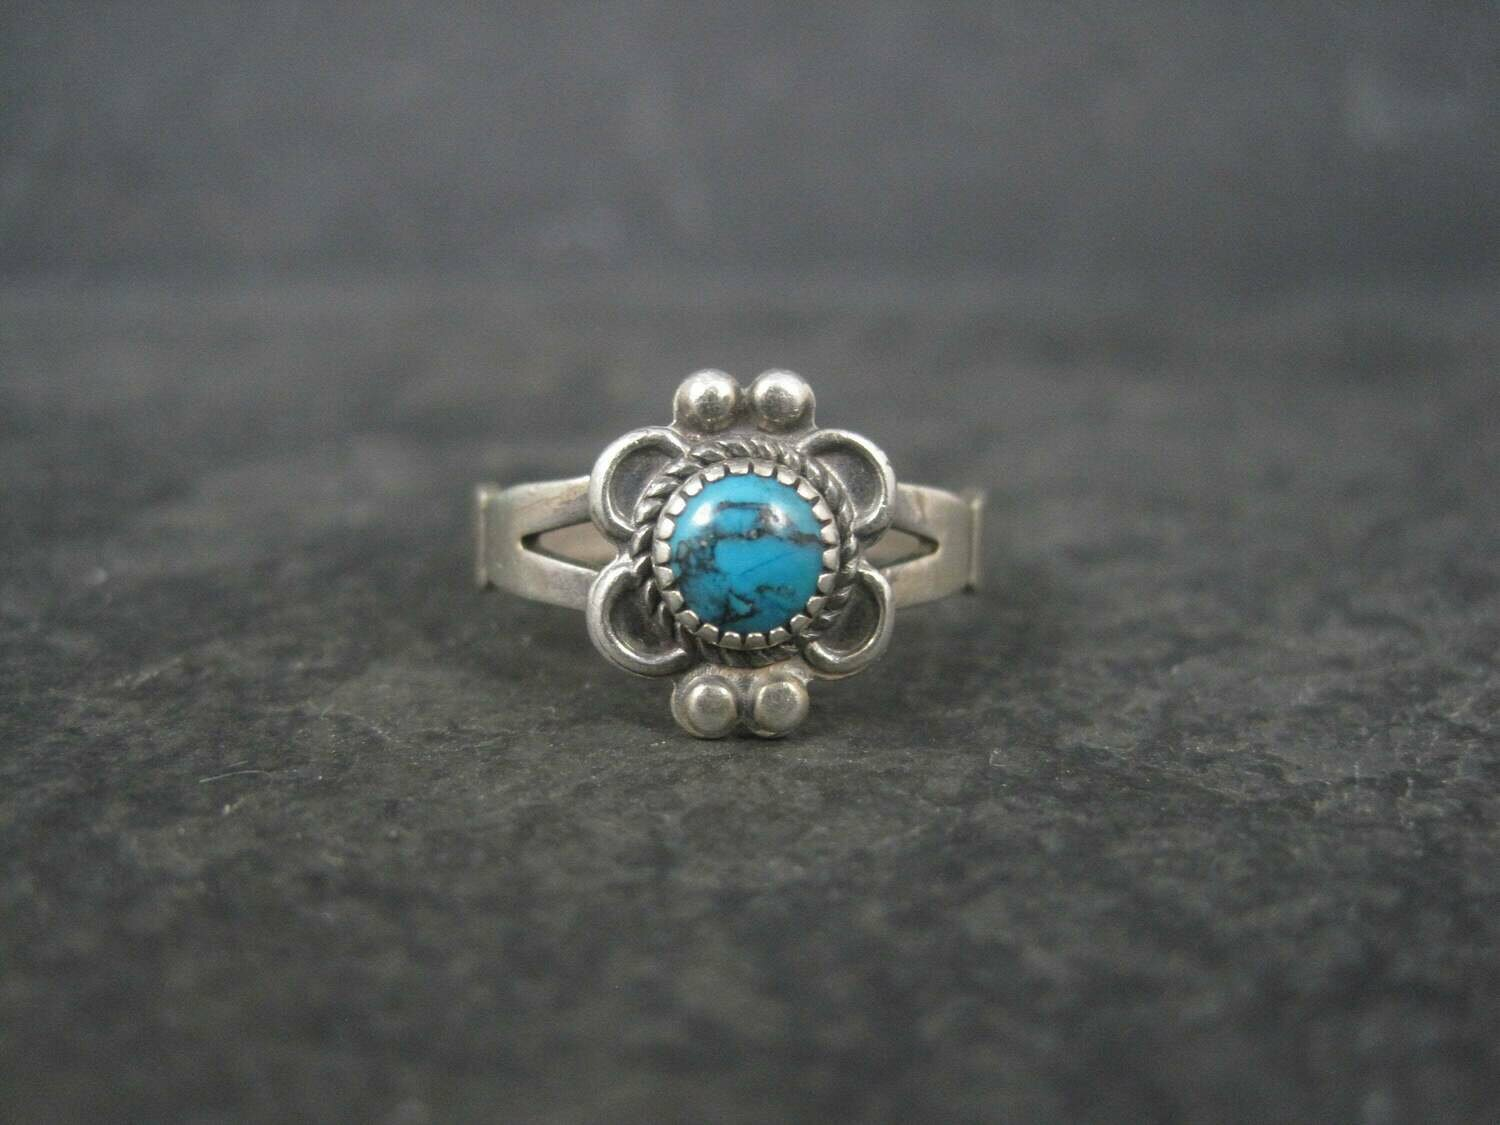 Dainty Vintage Southwestern Sterling Turquoise Ring Size 6.5